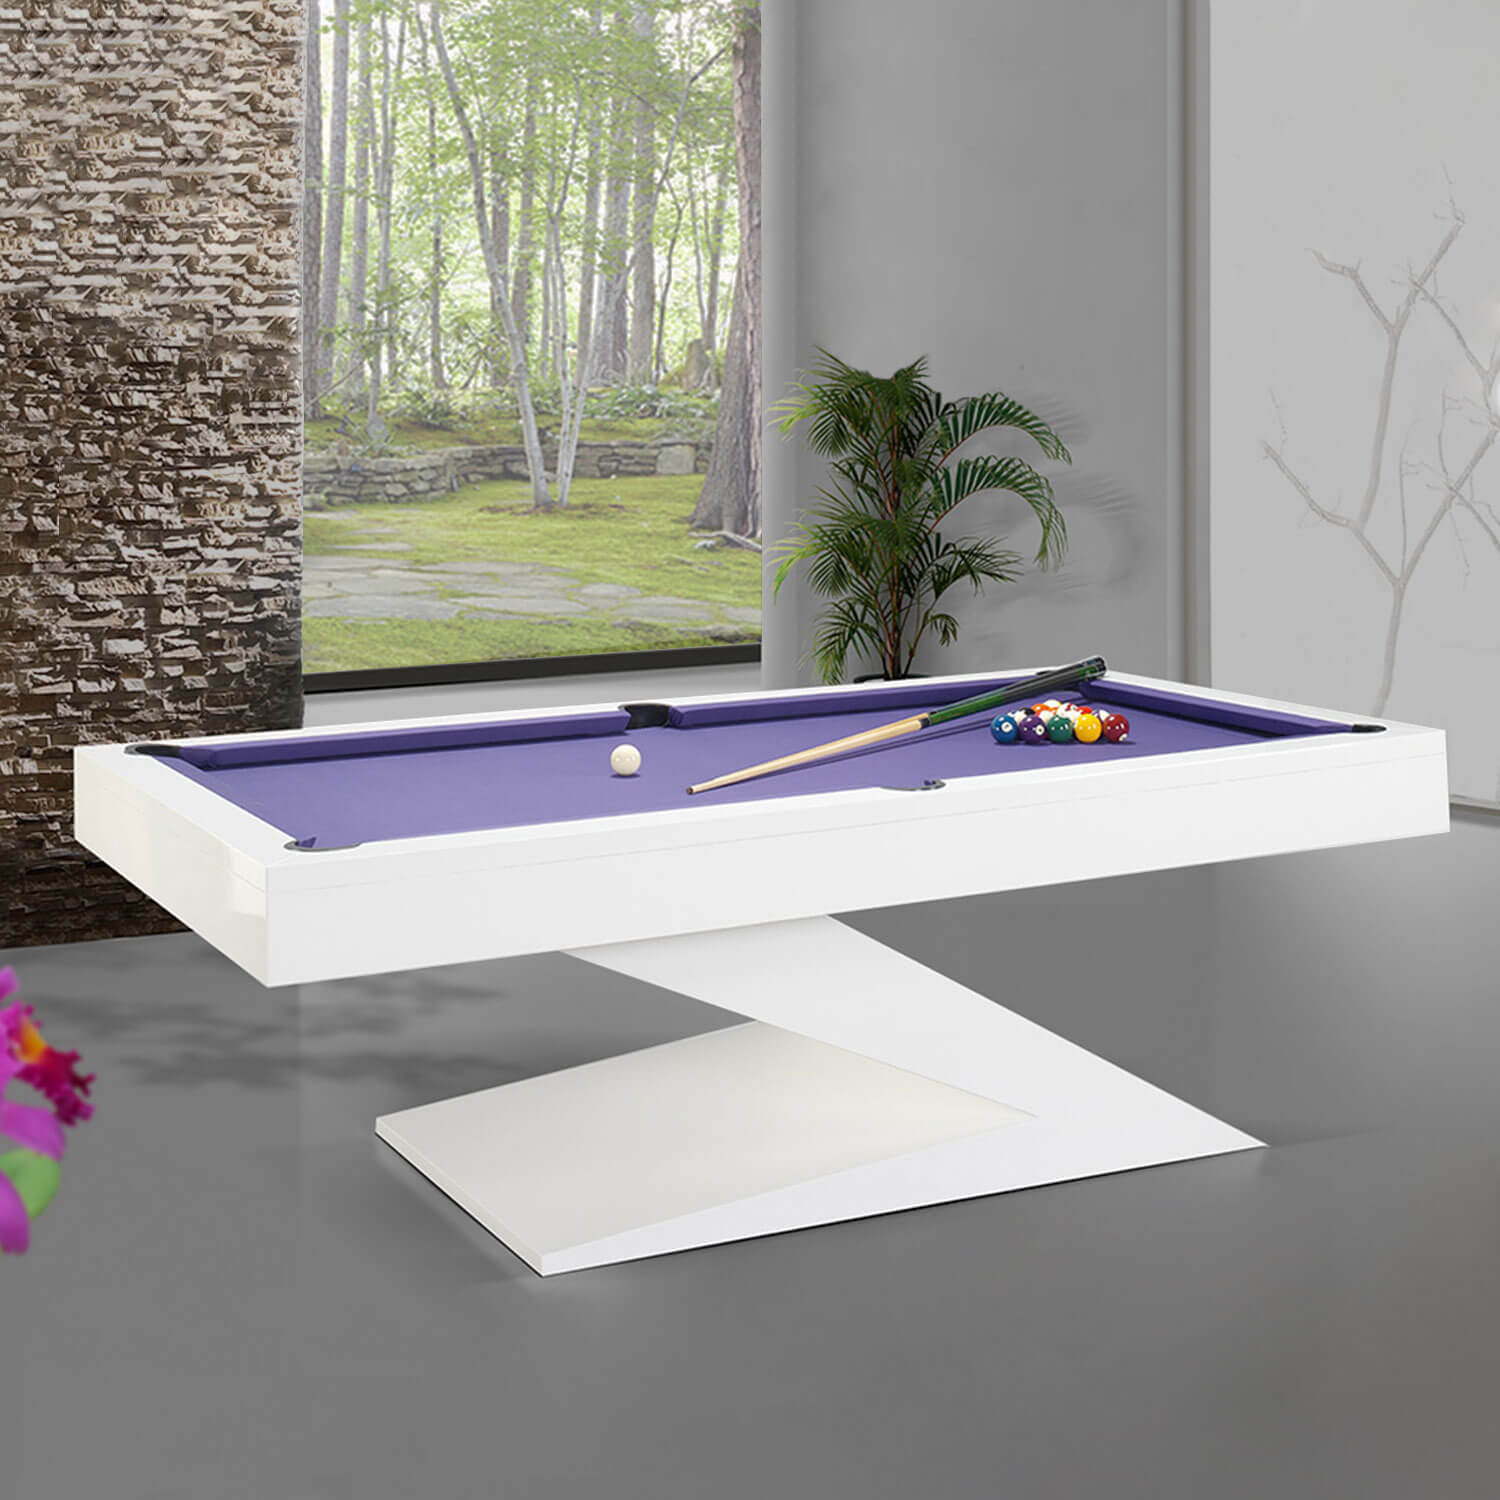 The Zen Slate Bed Pool Table Liberty Games